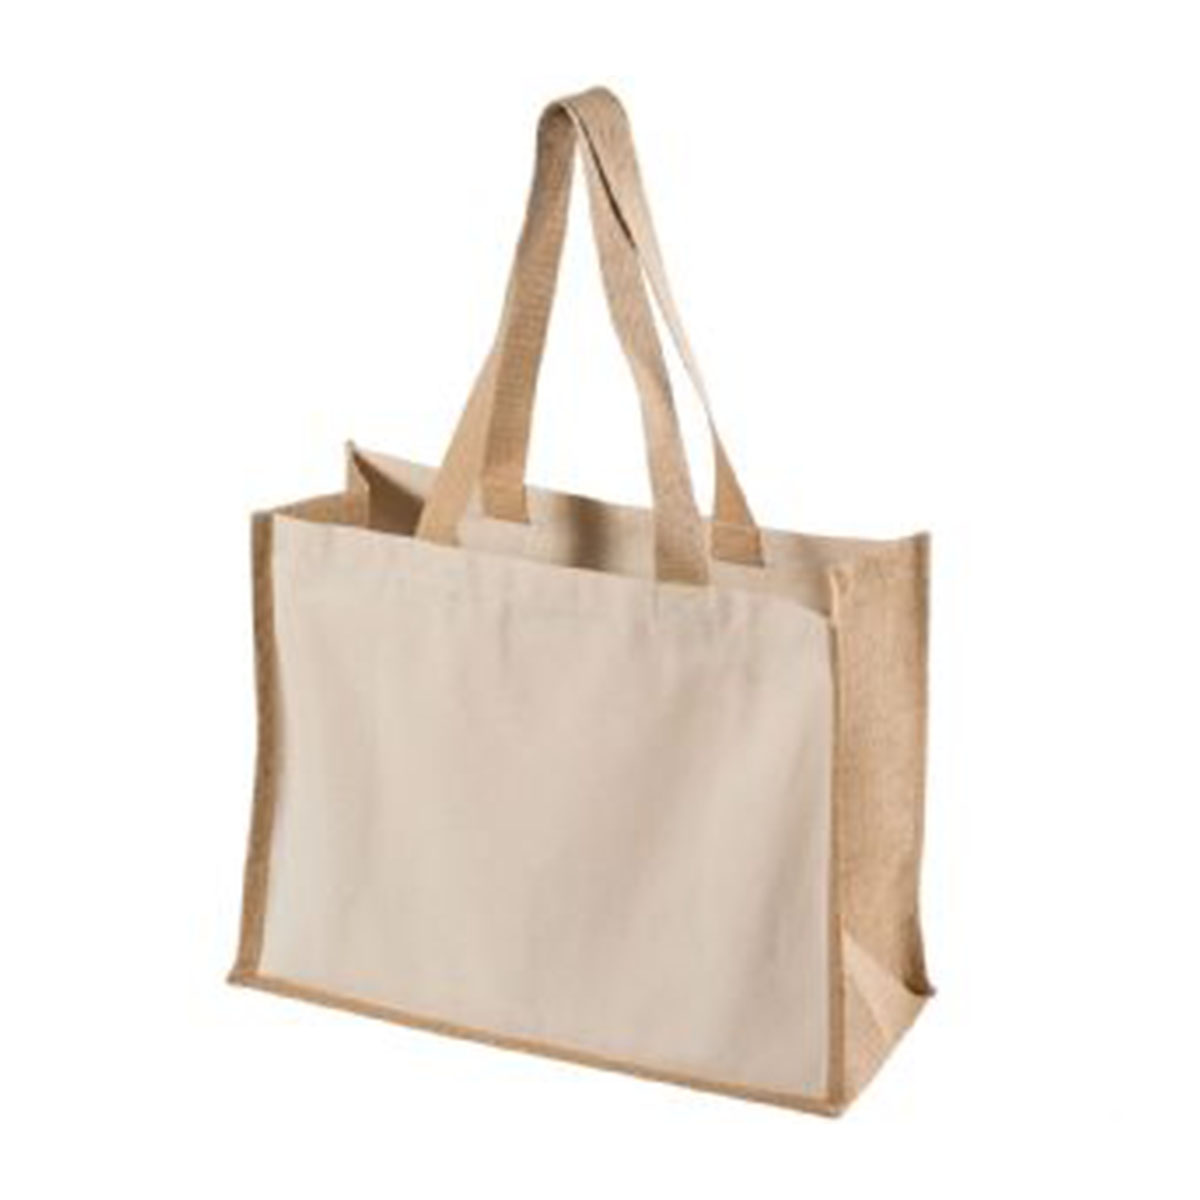 Functional Tote Bag-Natural